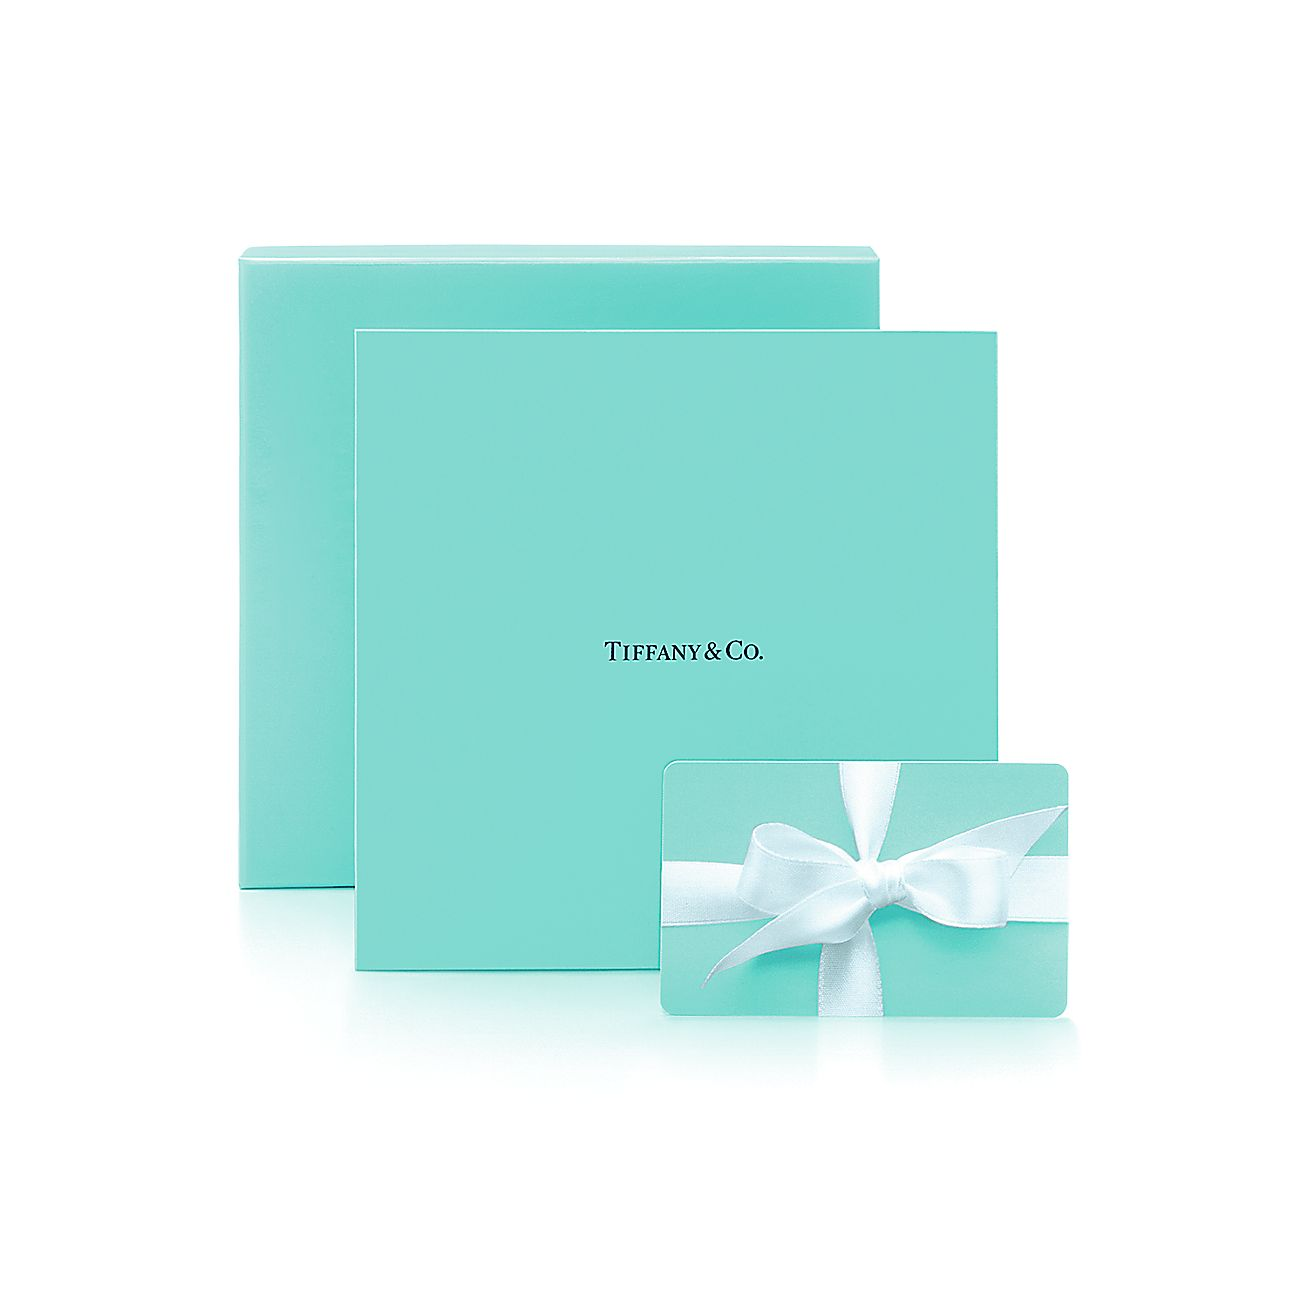 Tiffany Gift Card<br>$50